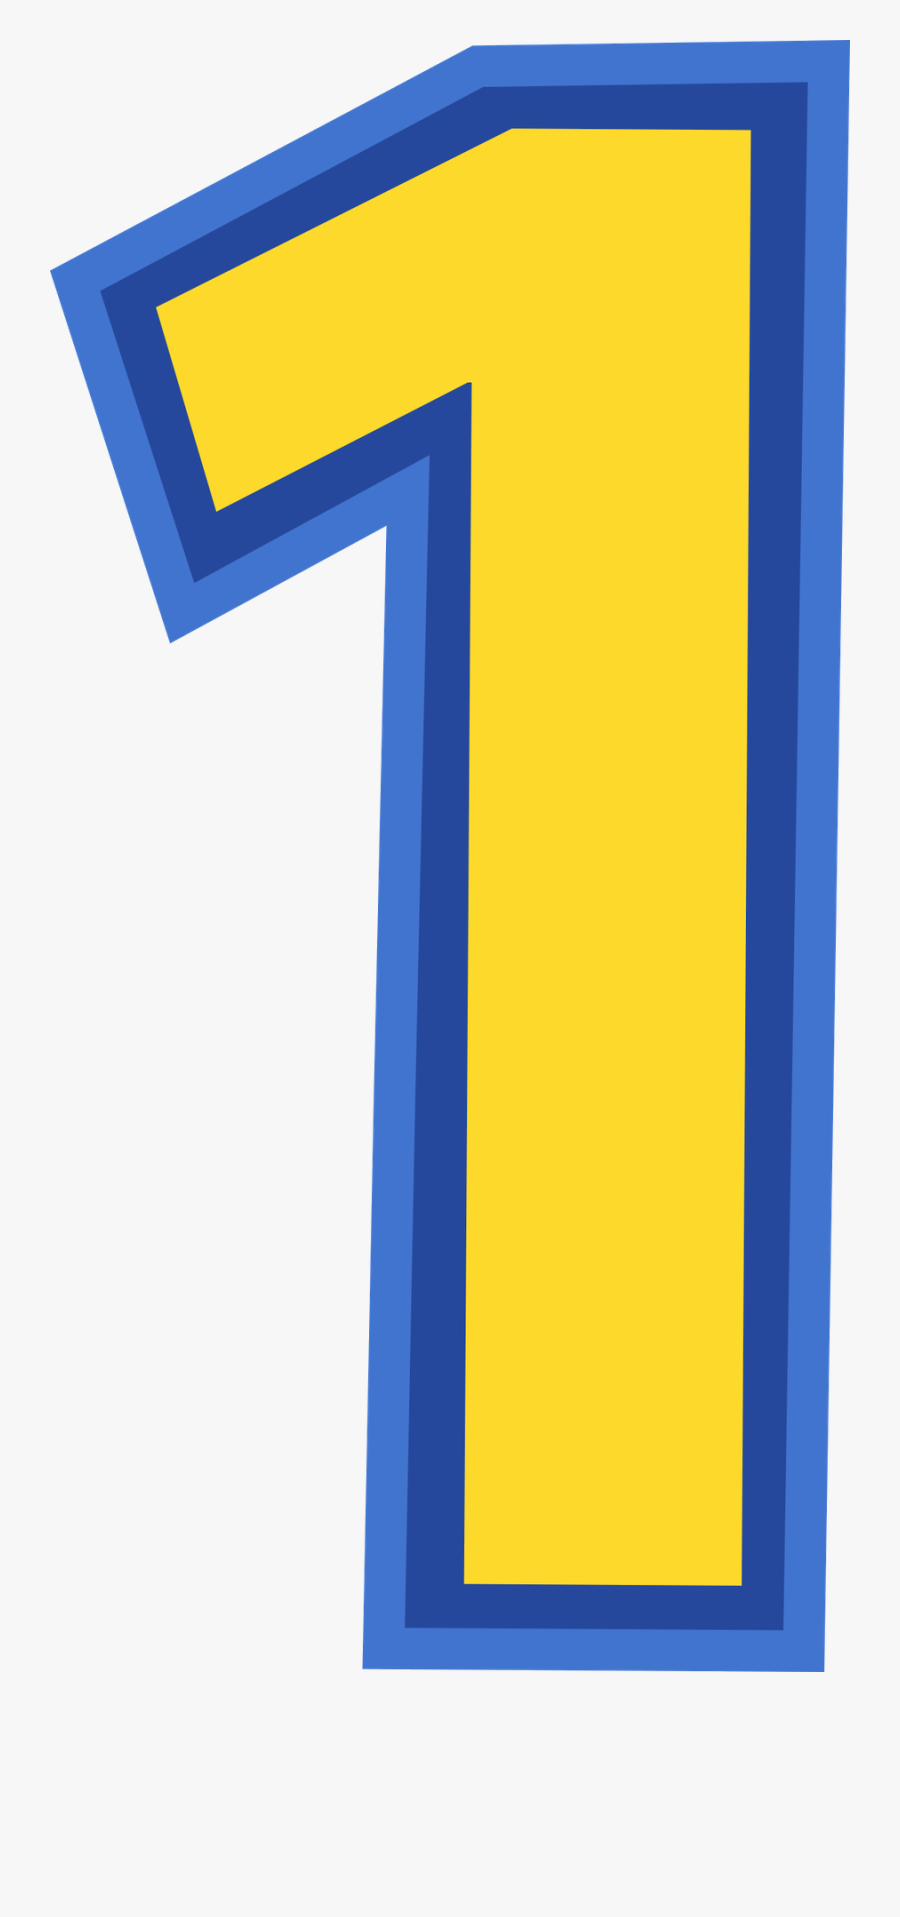 Minus Lettering, Scrapbook, Toys, Alphabet And Numbers, - Numero 1 Toy Story, Transparent Clipart